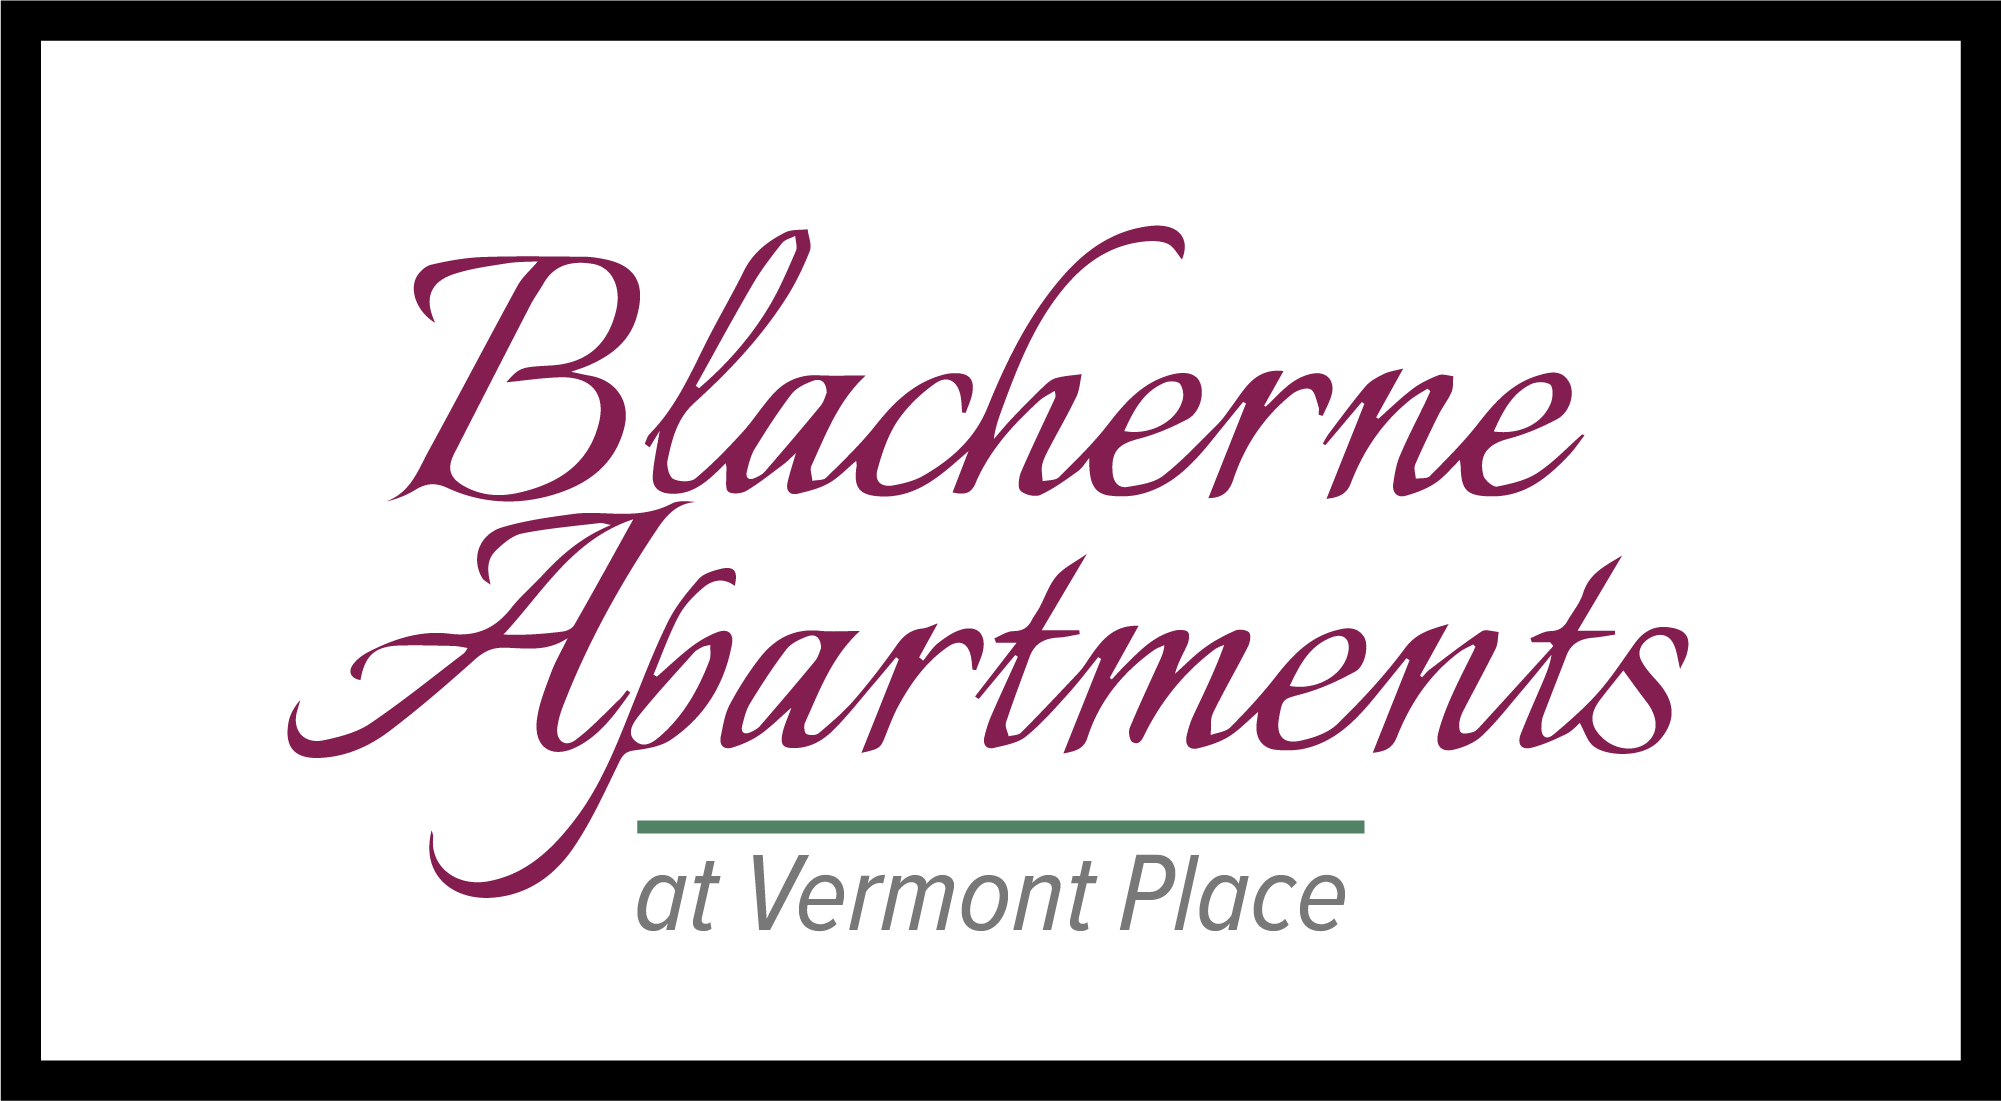 Blacherne Apartments at Vermont Place is Van Rooy Companies Property